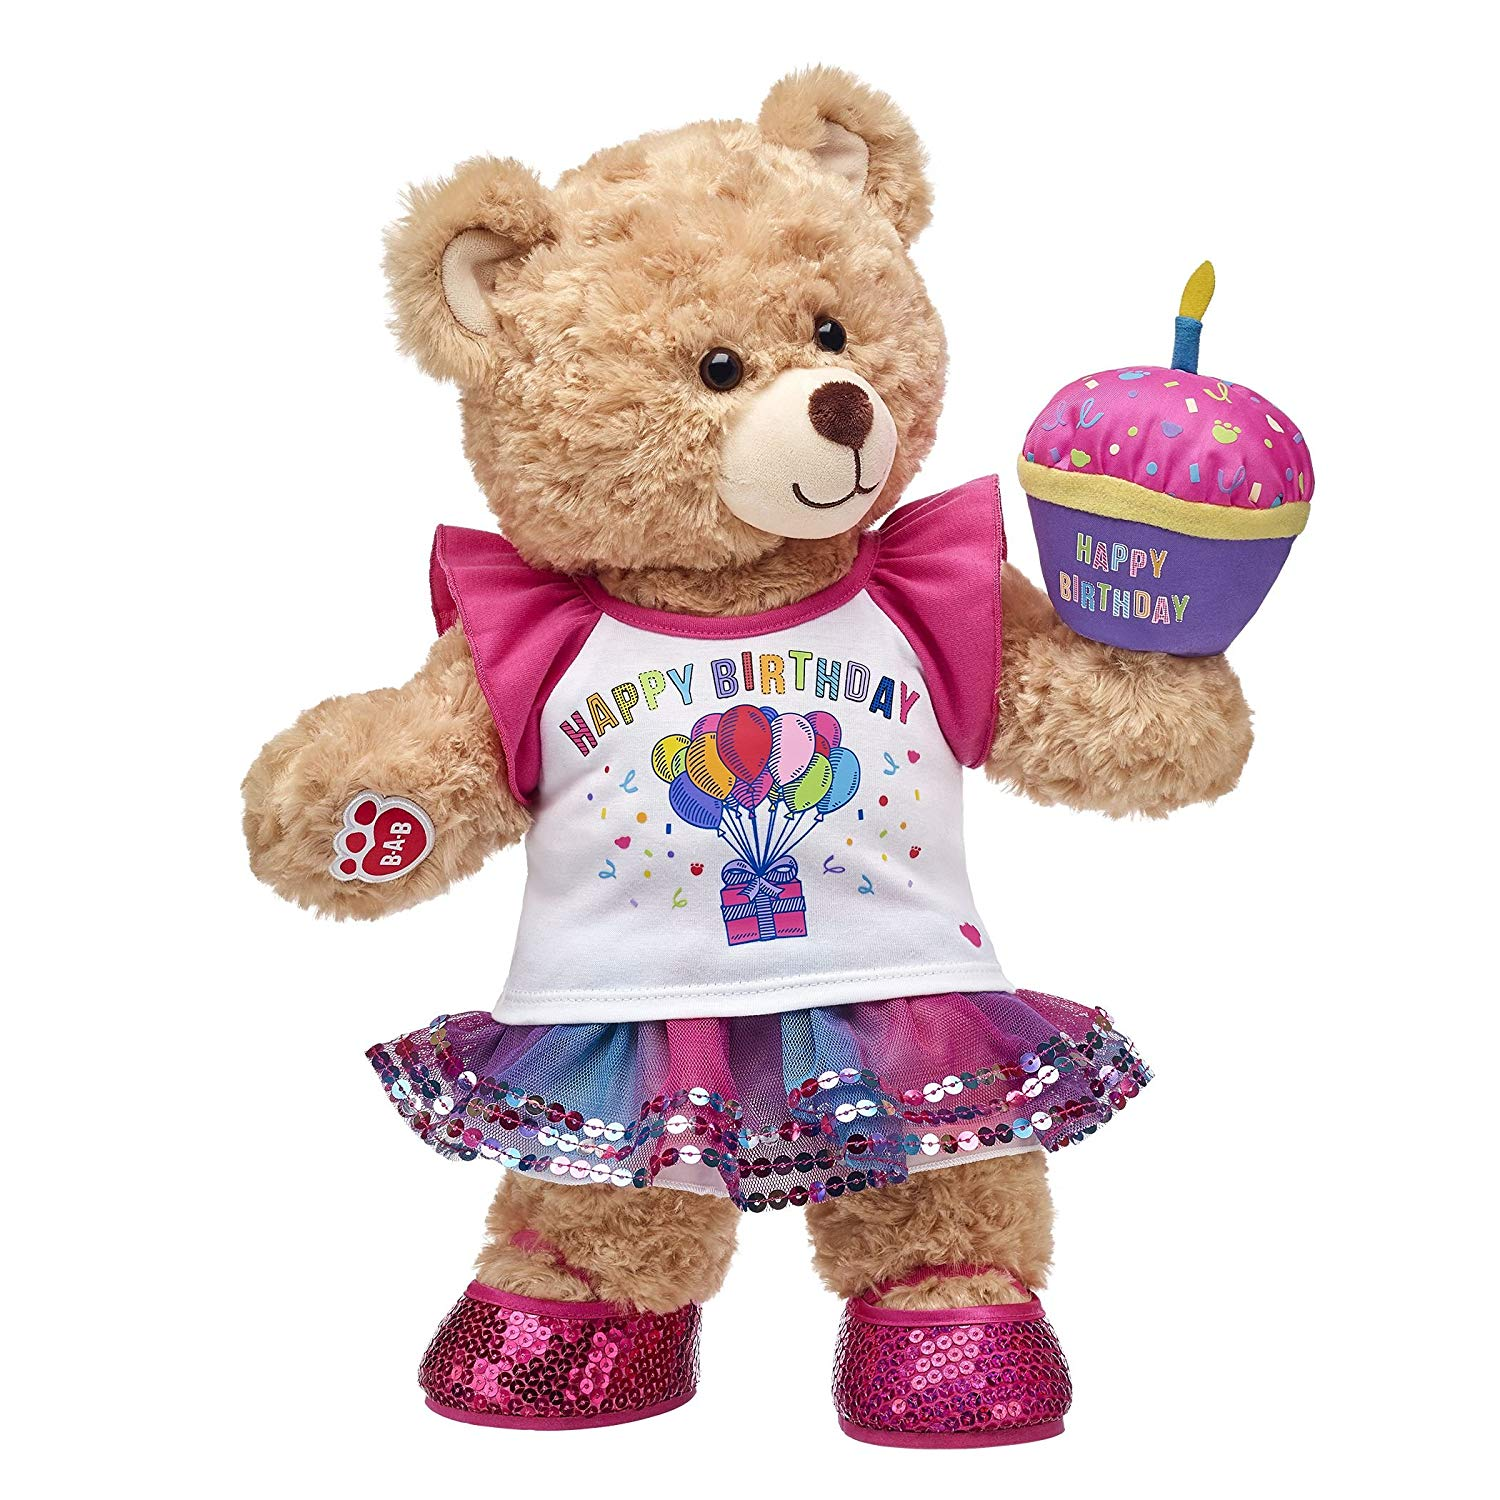 Build A Bear Workshop Birthday Girl Teddy Bear